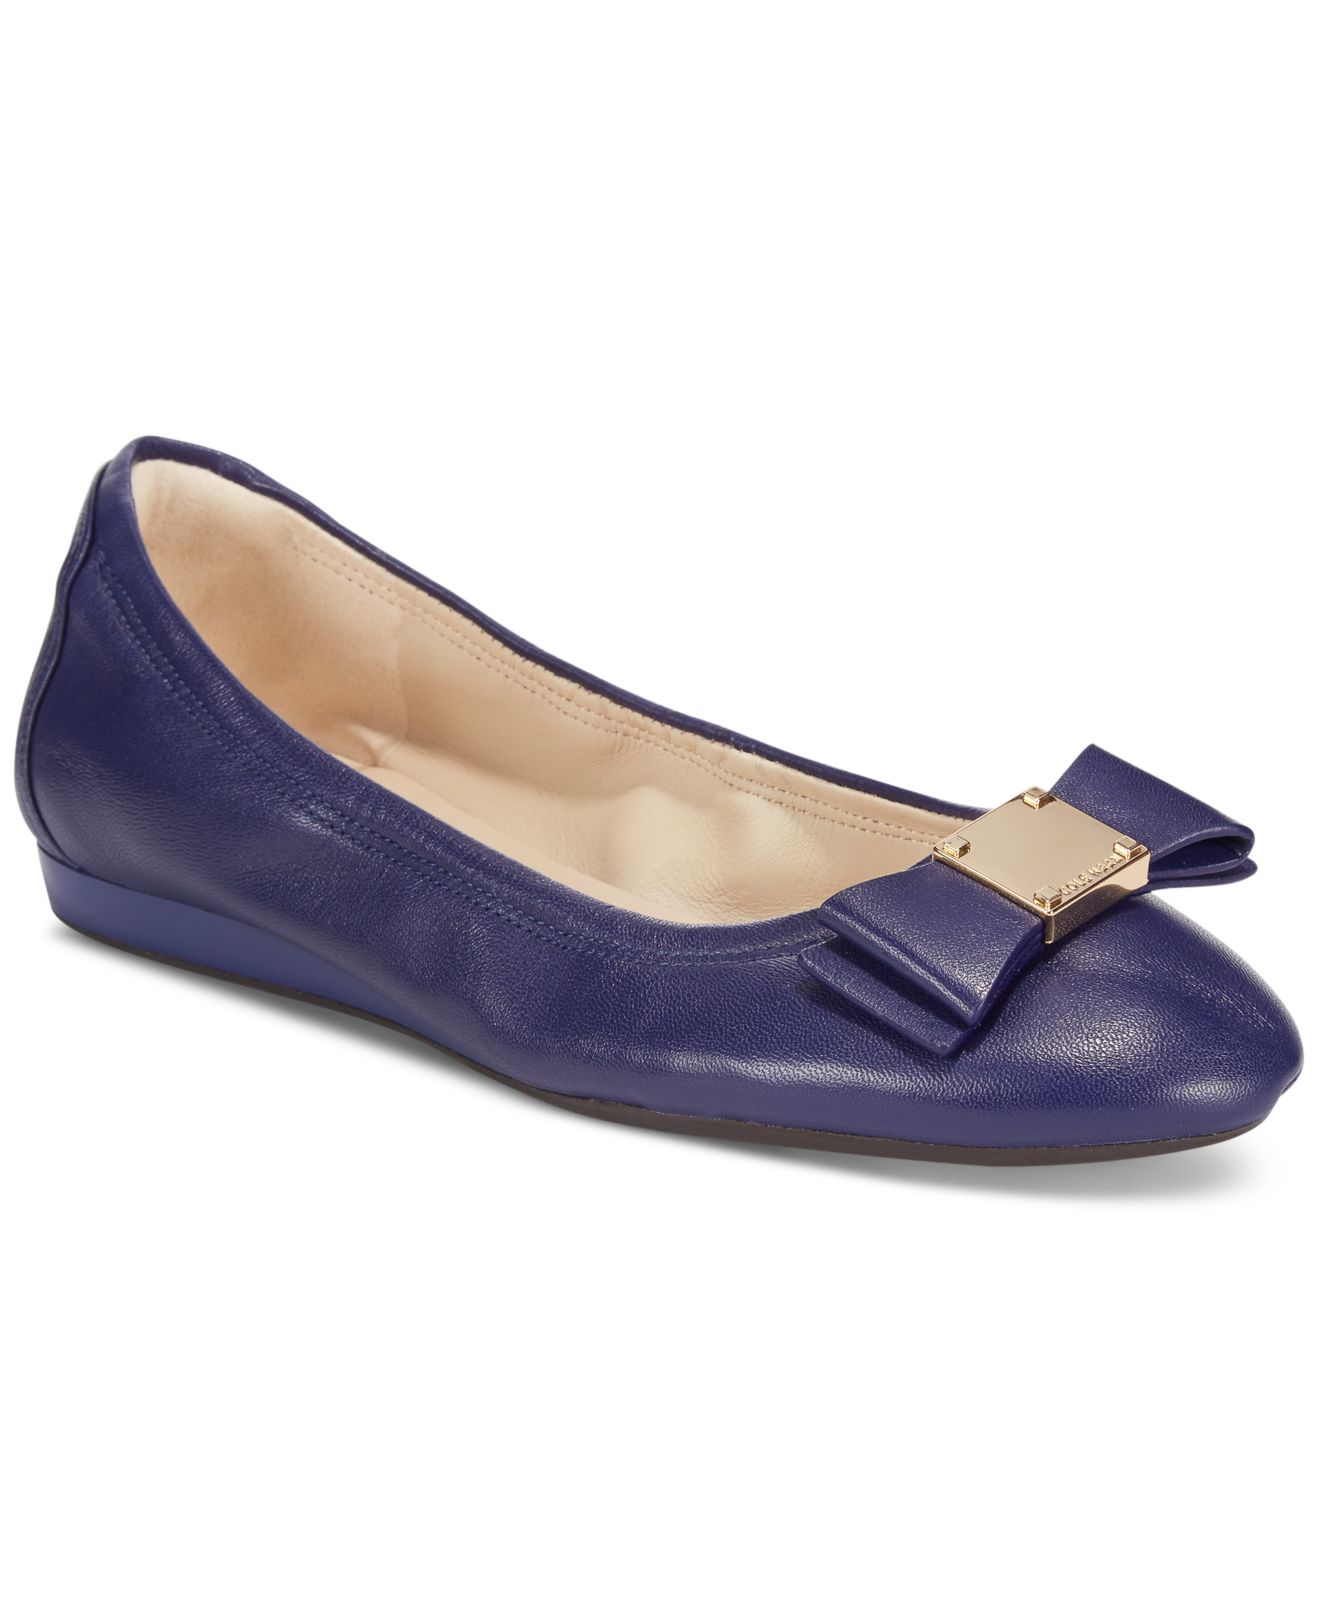 22ae1d4f2d09 Lyst - Cole Haan Tali Bow Ballet Flats in Blue